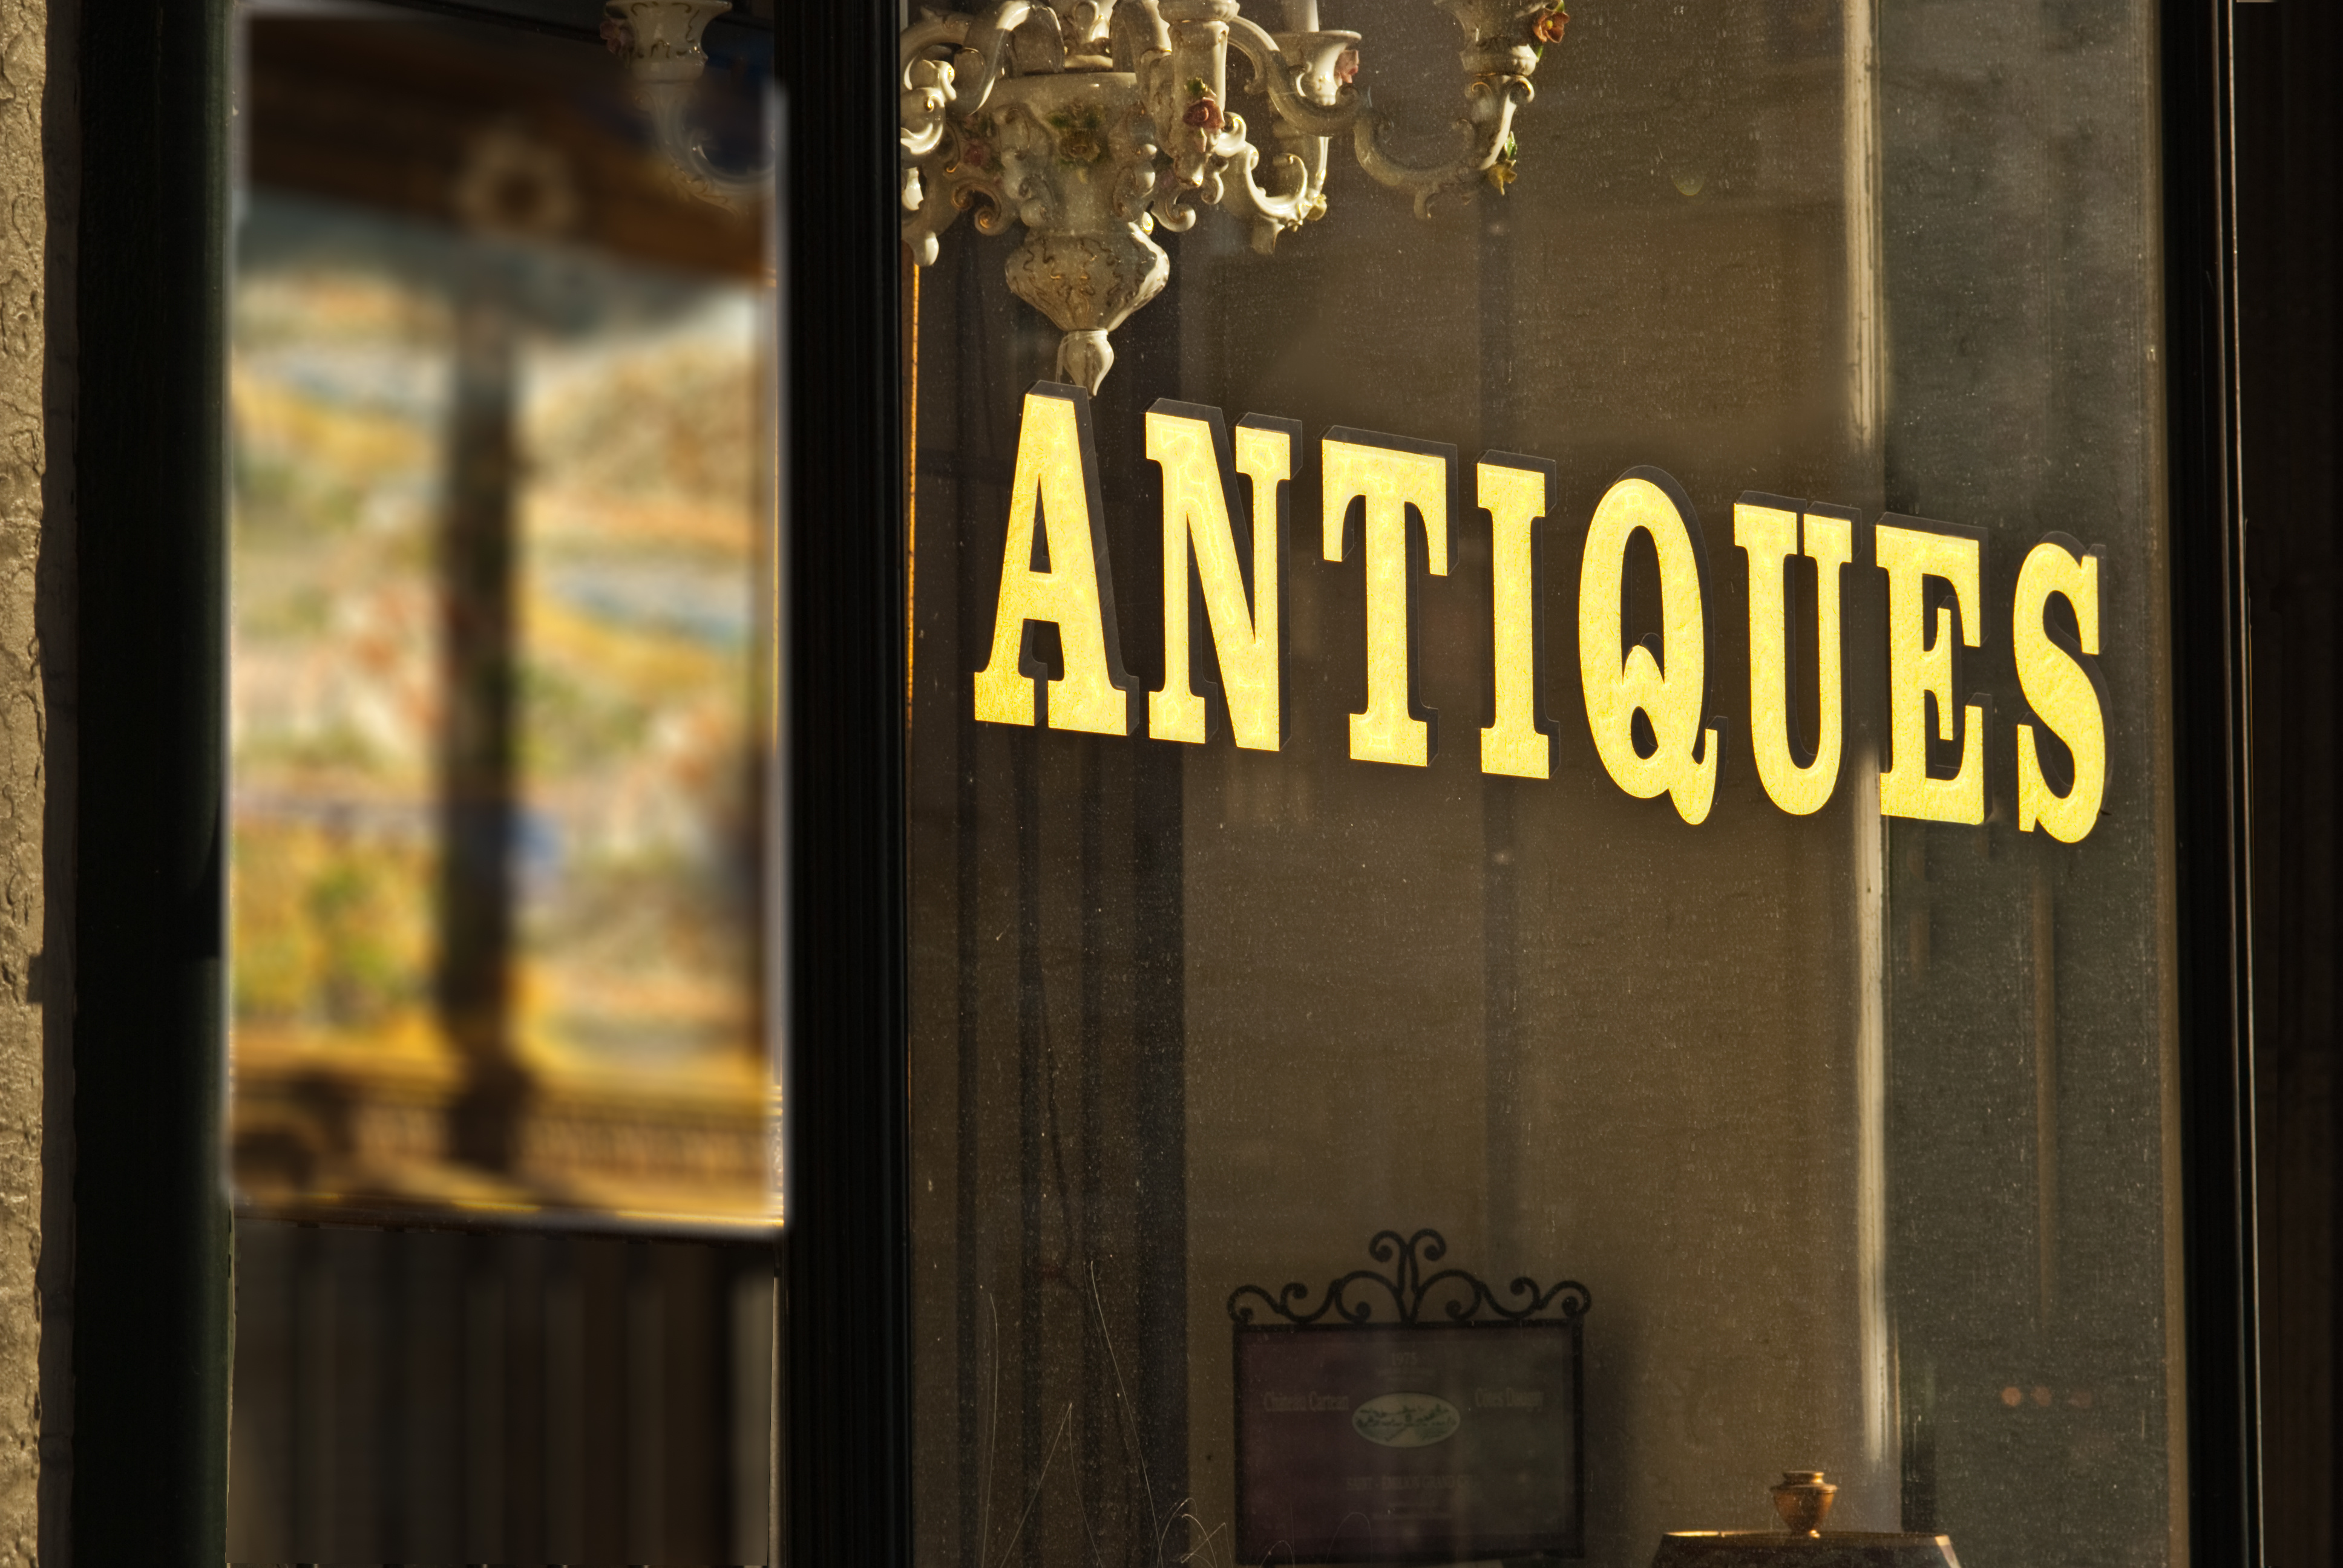 Antique store window sign wilth gold letters - Gotham Signs & Graphics